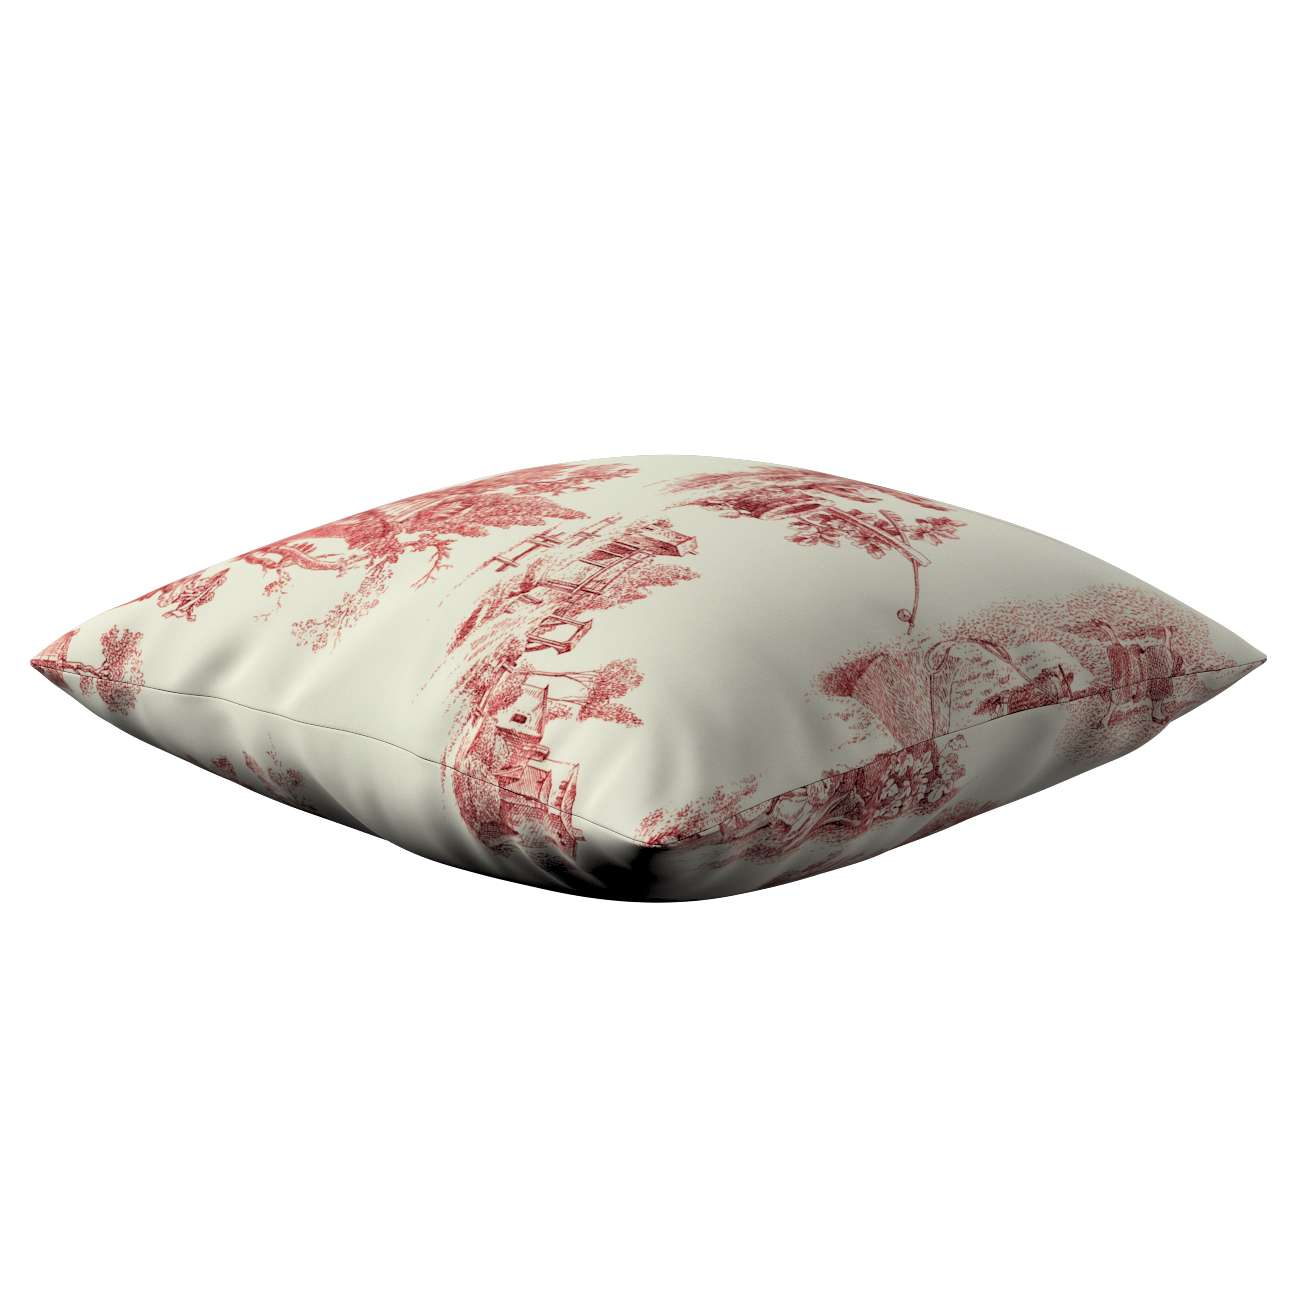 Kinga cushion cover 43 x 43 cm (17 x 17 inch) in collection Avinon, fabric: 132-15